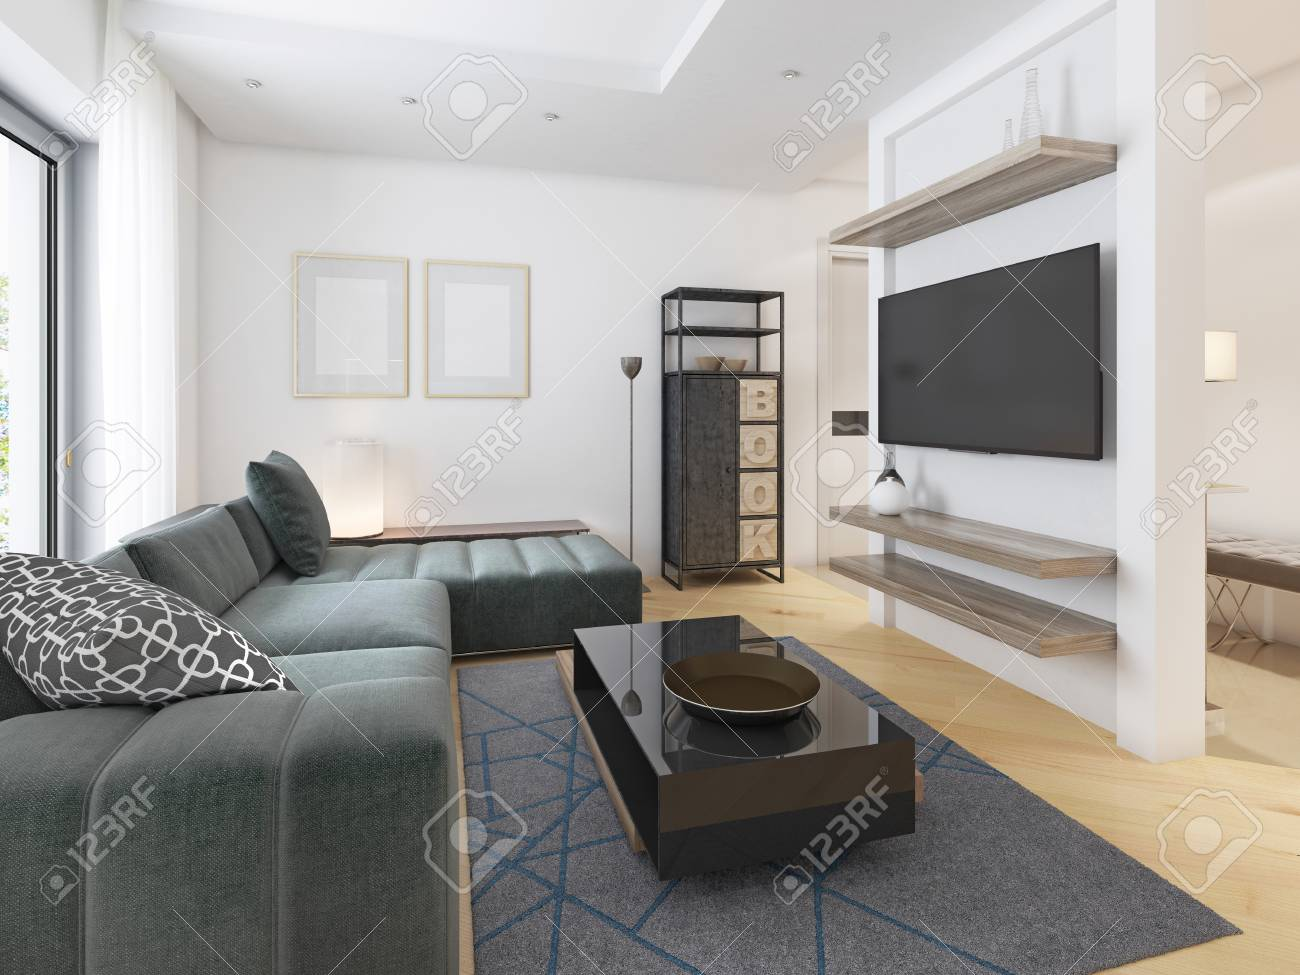 Luxurious modern studio apartment in Contemporary style. 3D rendering